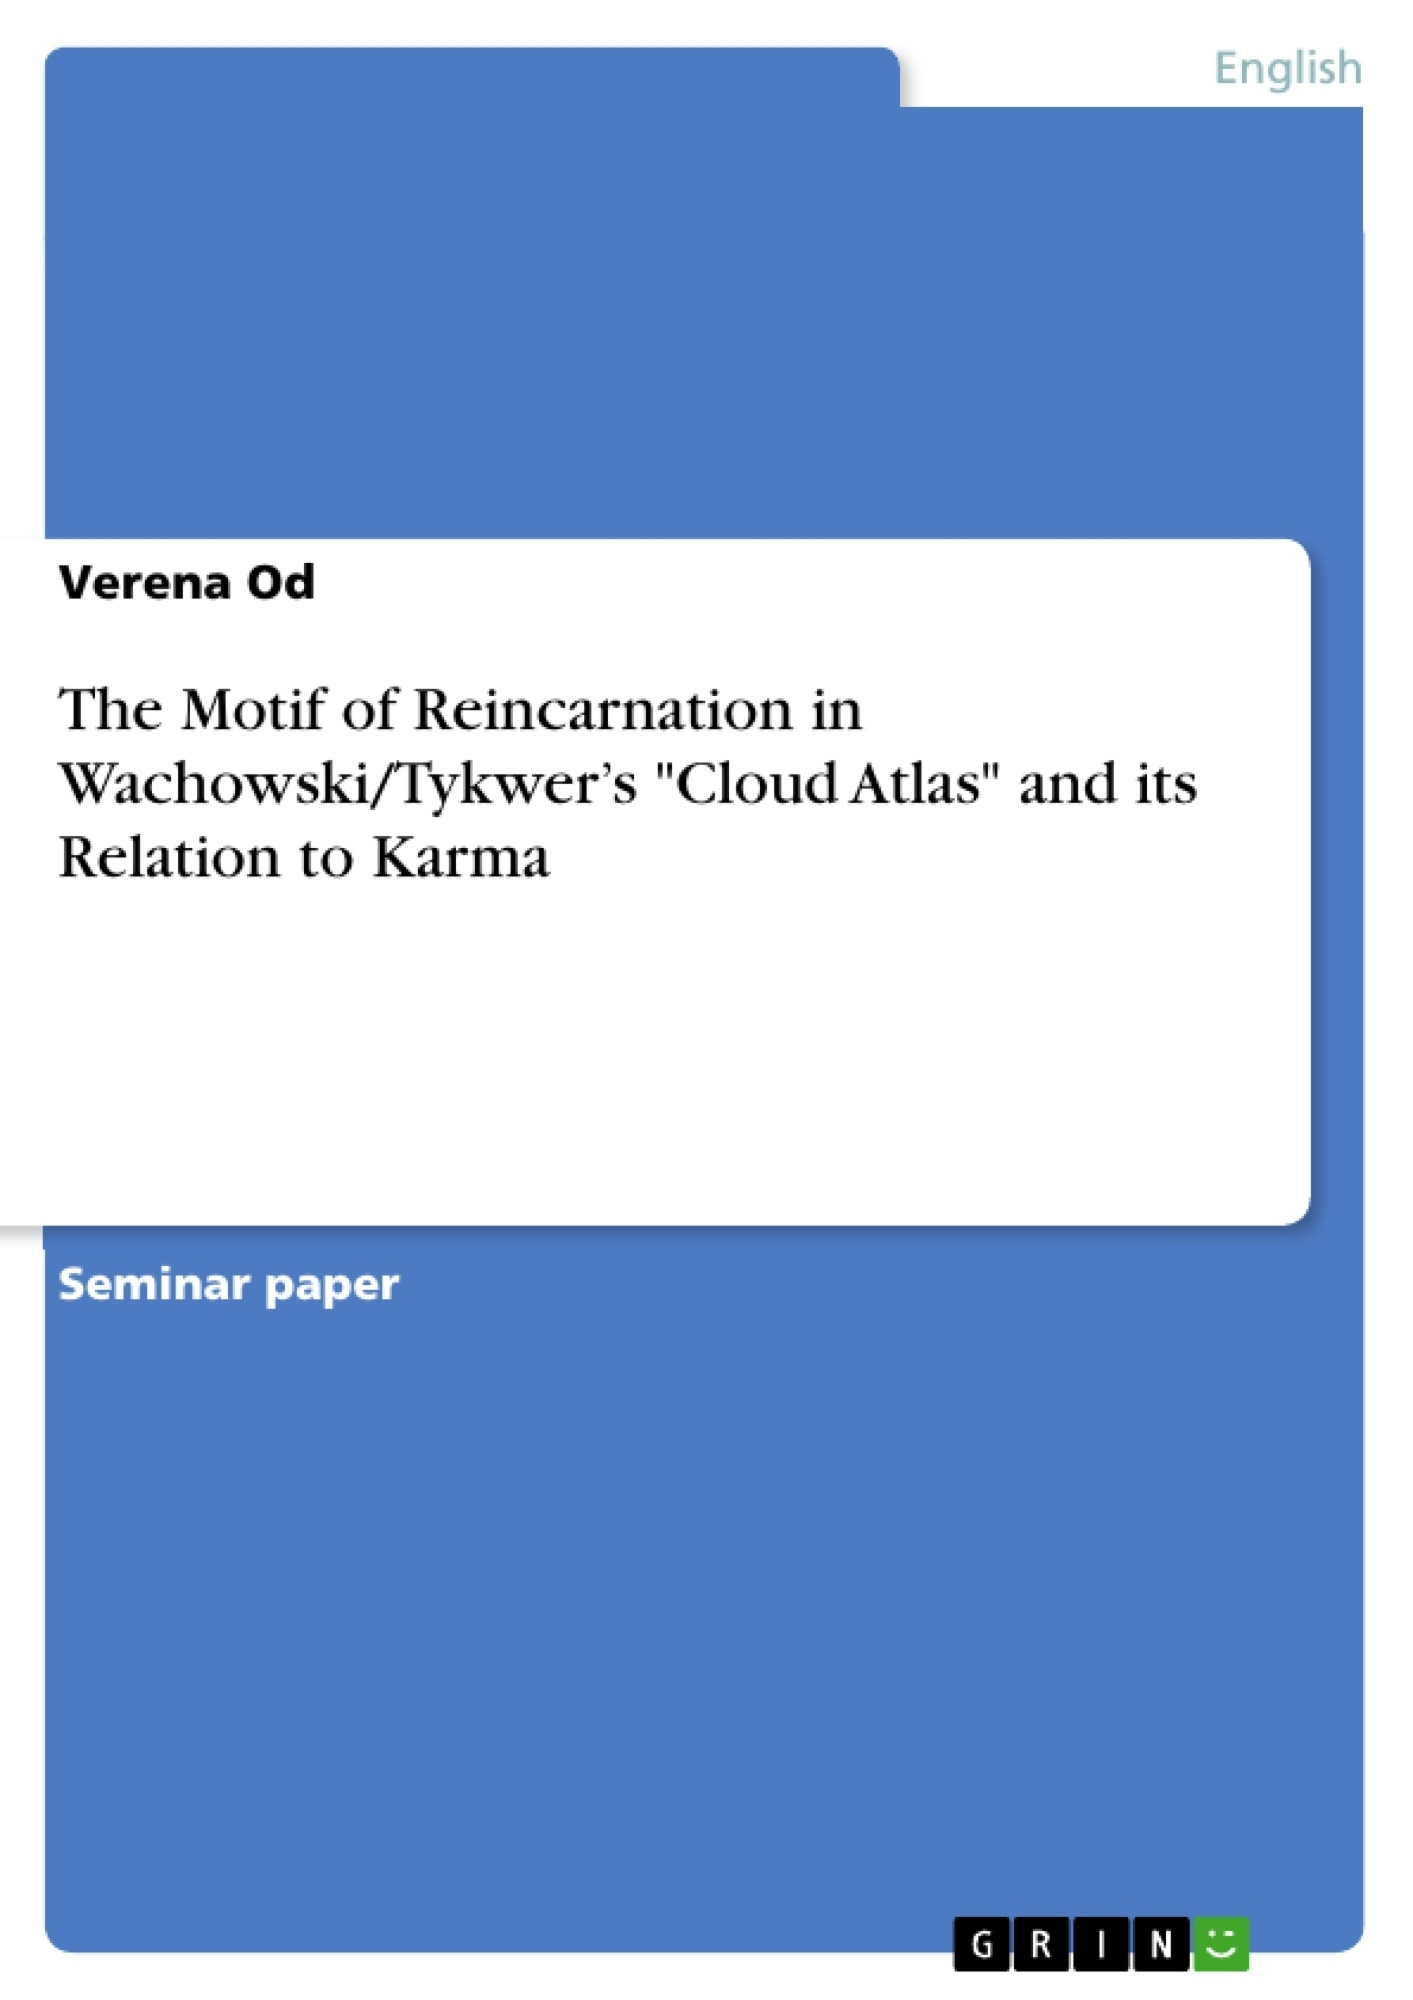 """Title: The Motif of Reincarnation in Wachowski/Tykwer's """"Cloud Atlas"""" and its Relation to Karma"""